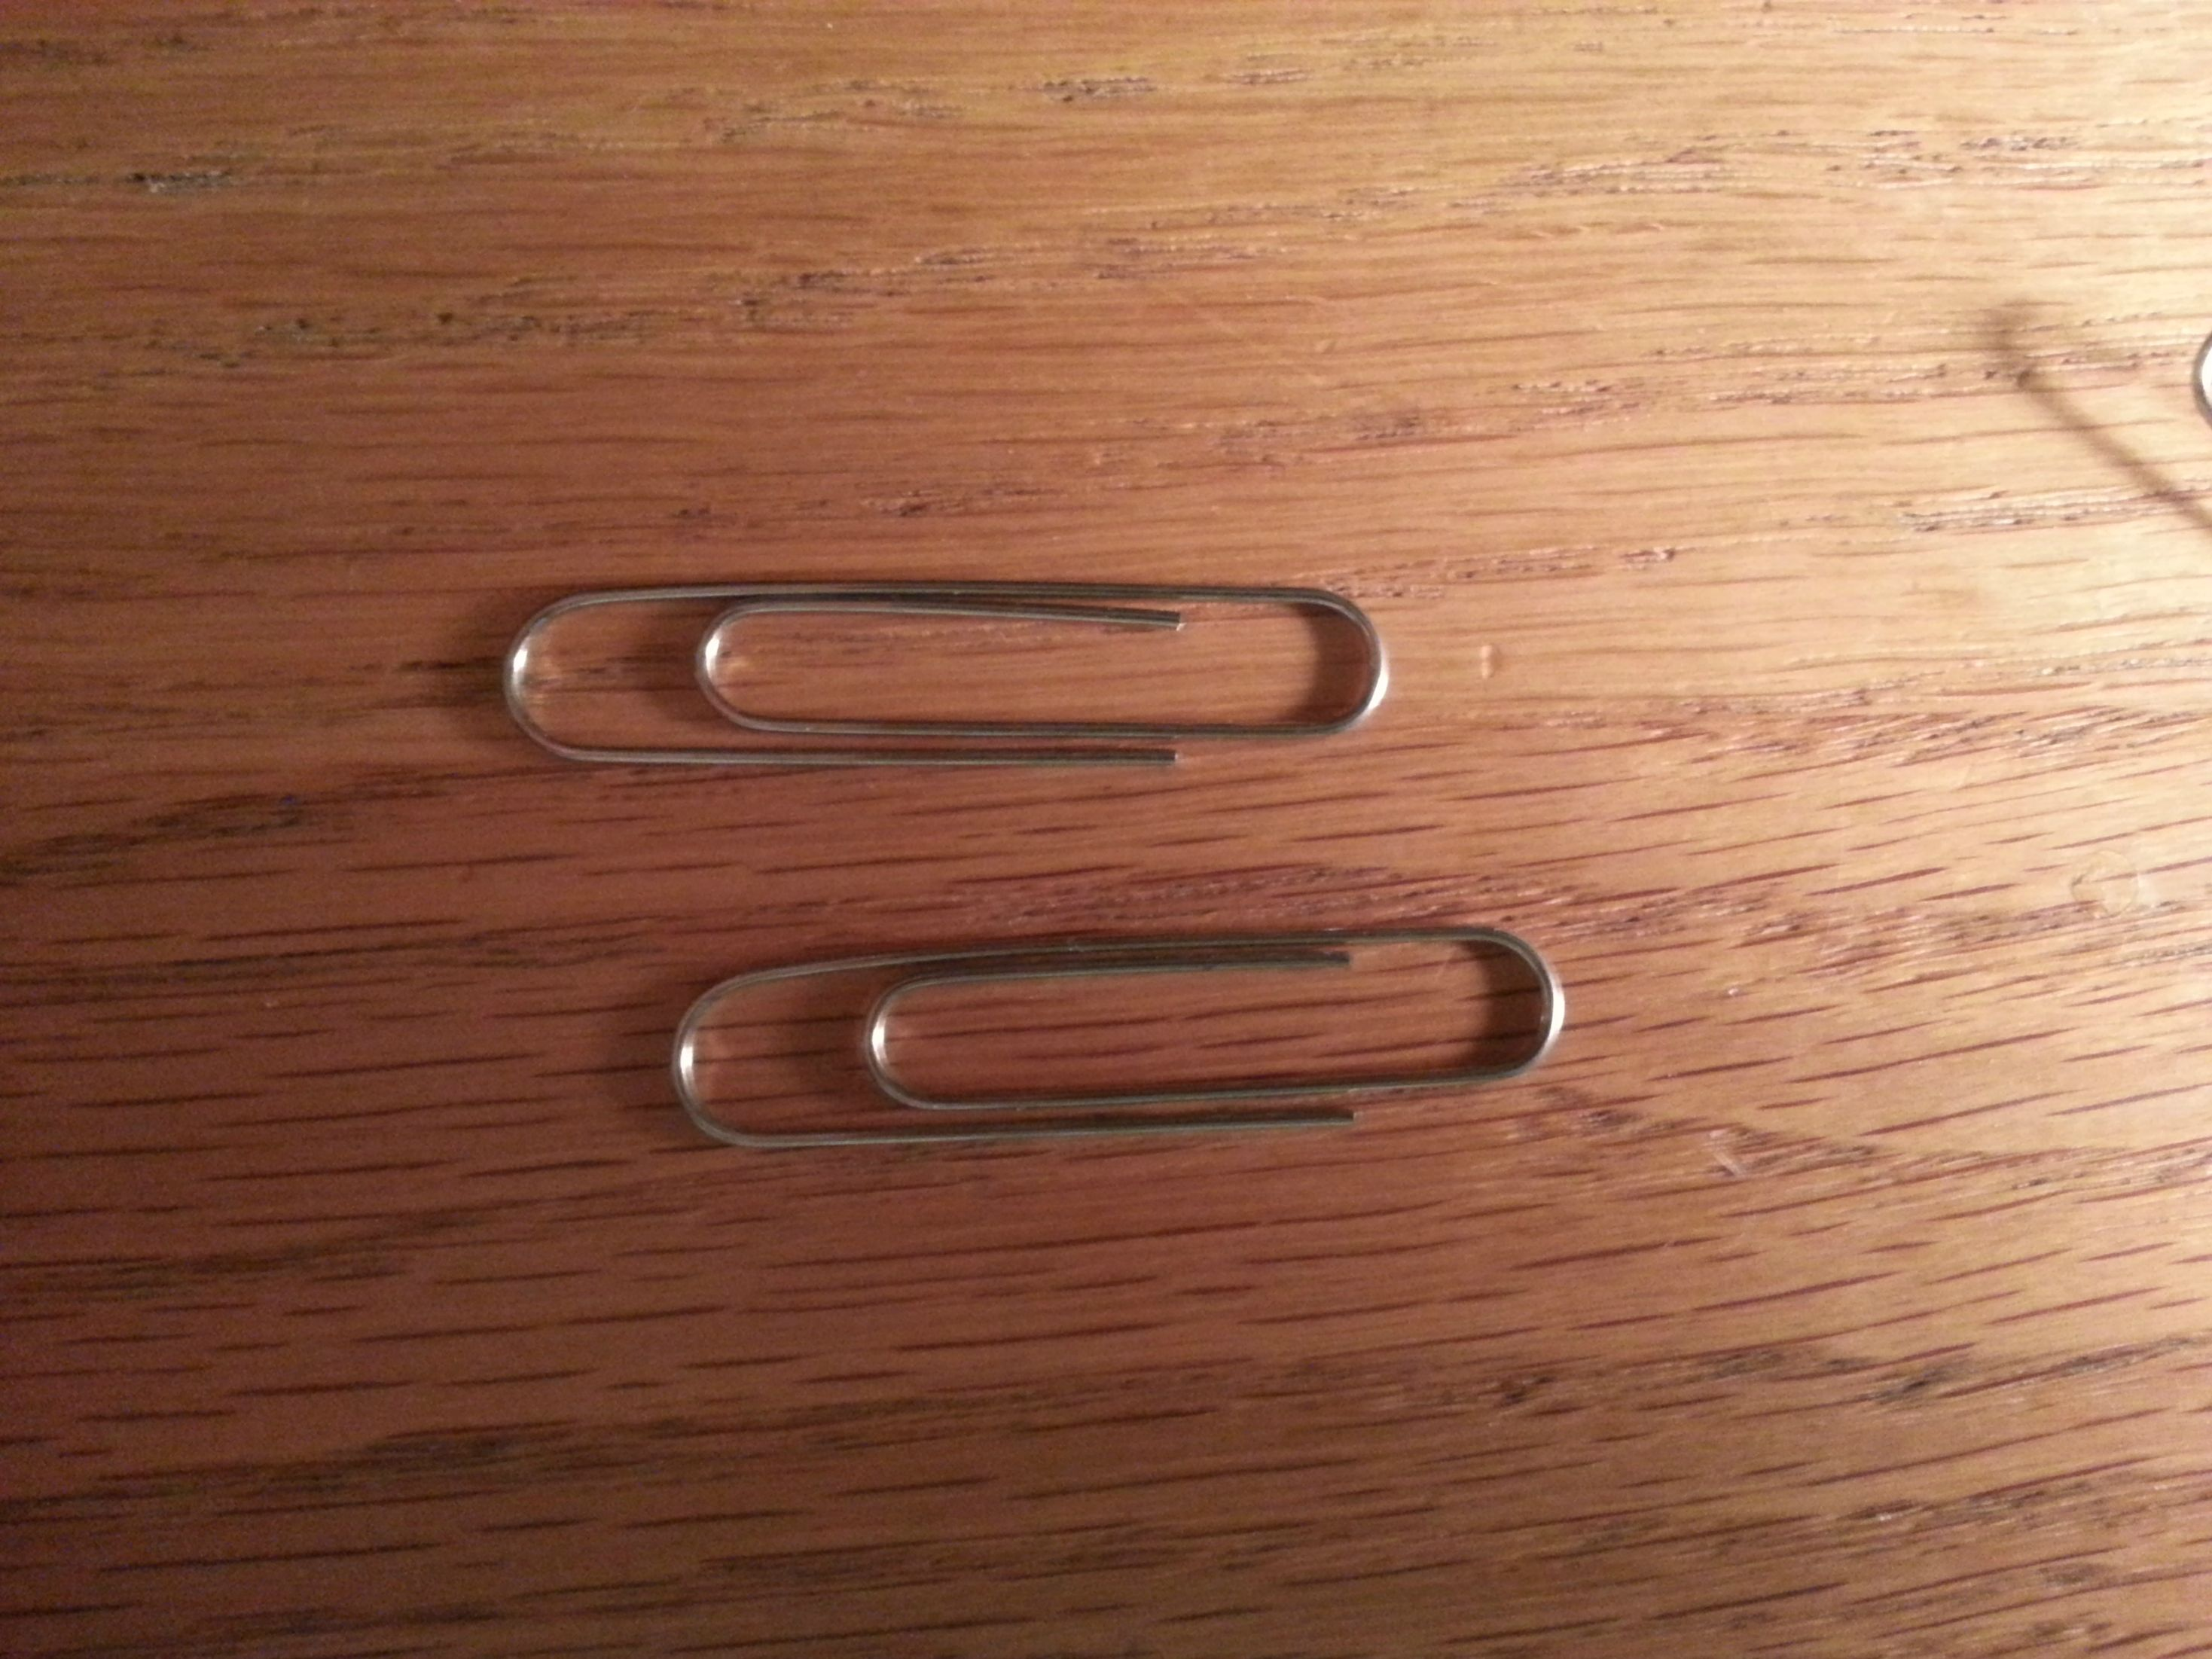 Lock Picking Set from Paperclips3